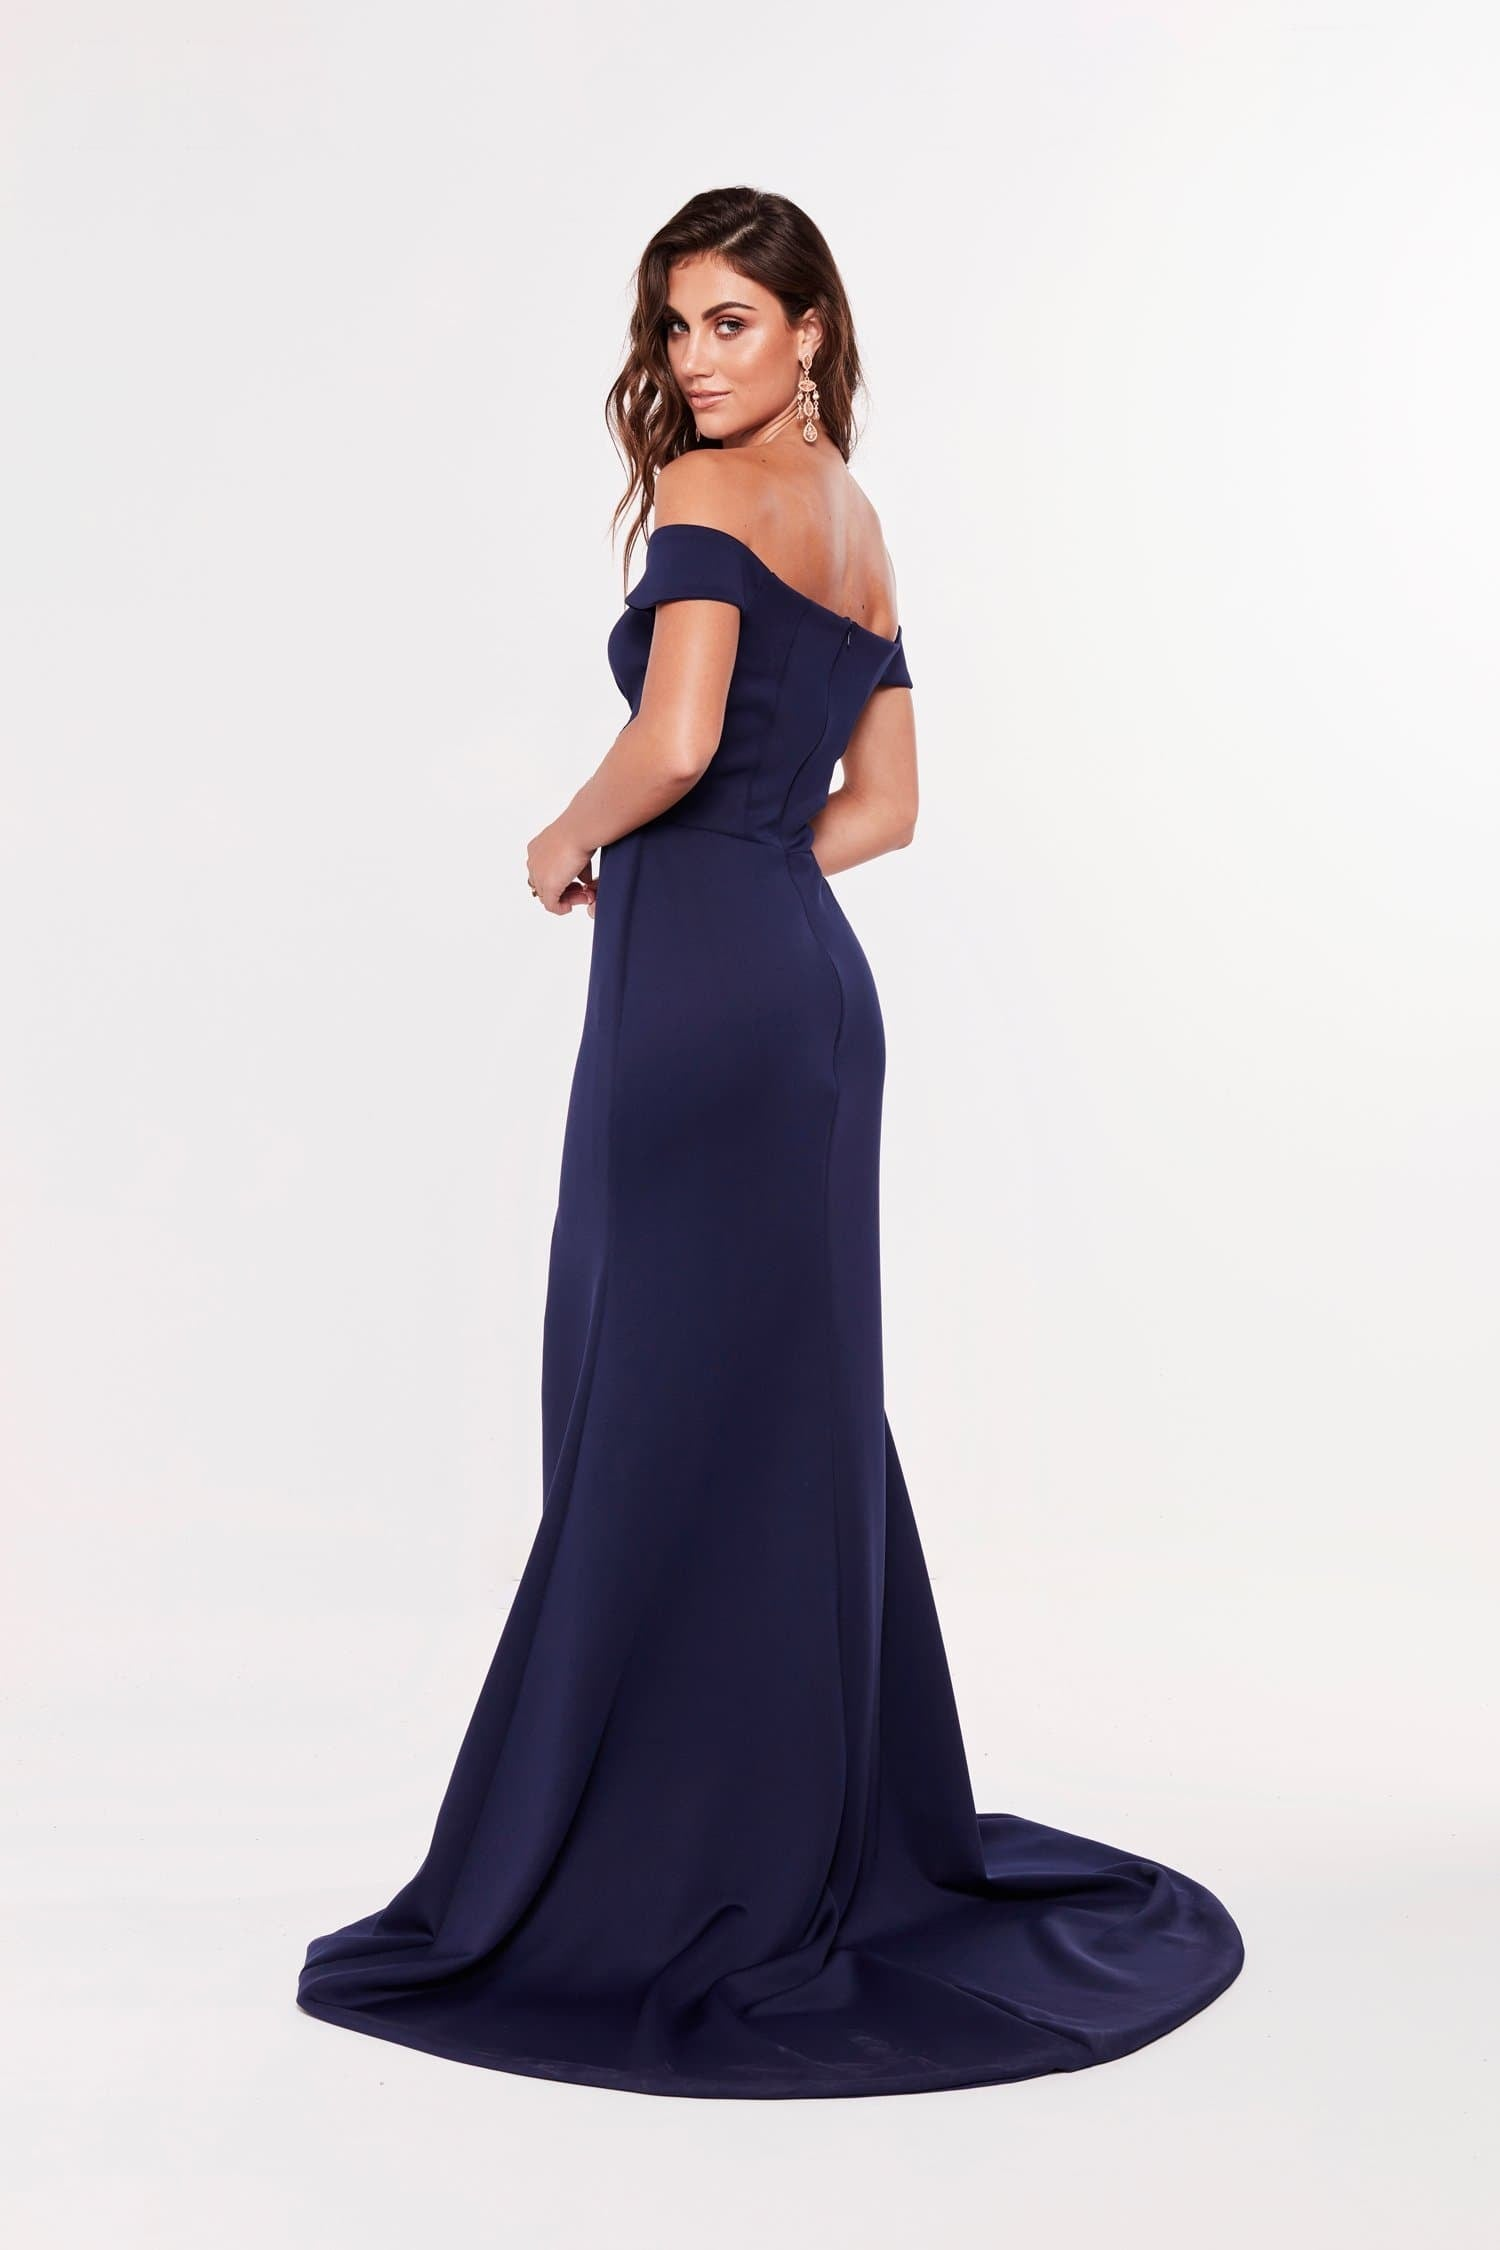 A&N Luxe Belle PontiI Off-Shoulder Gown - Navy